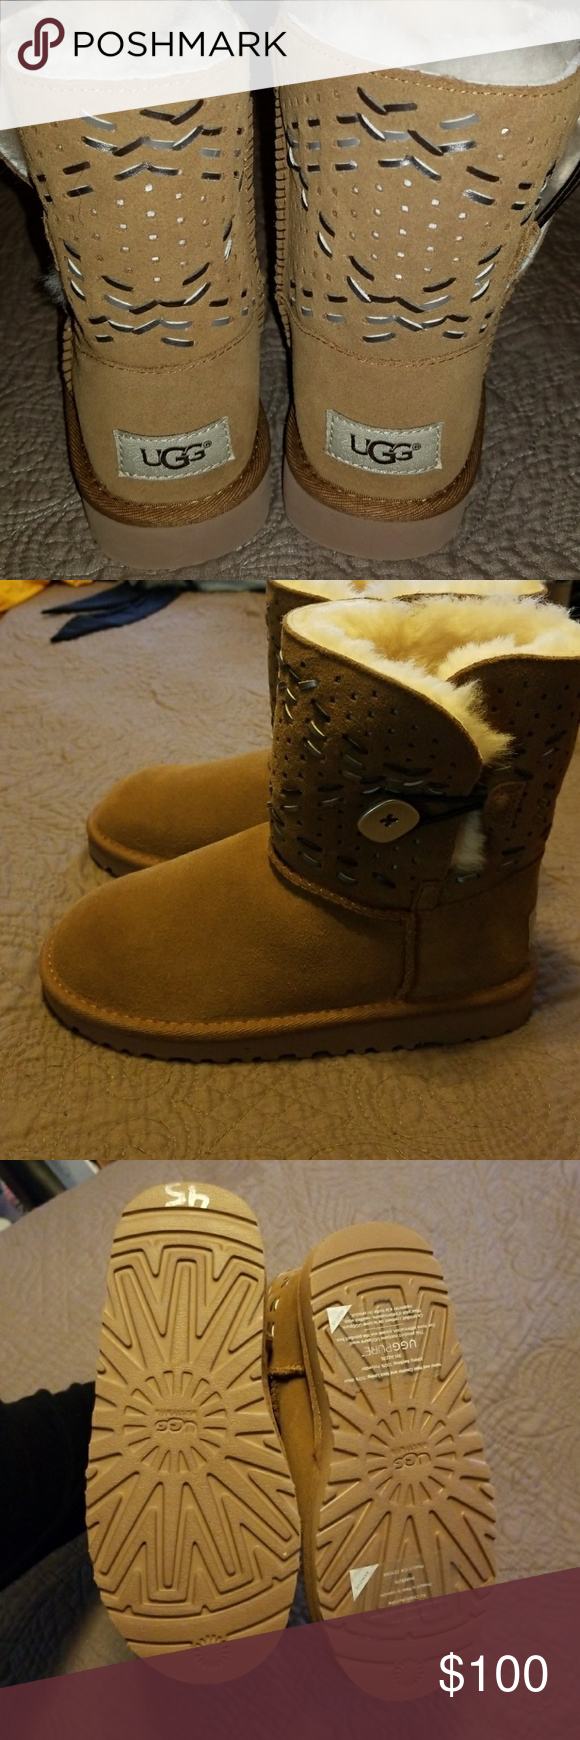 214f76e56e8 100%AUTHENTIC Uggs Girls size 1 Super cute uggs for girls size 1 New ...